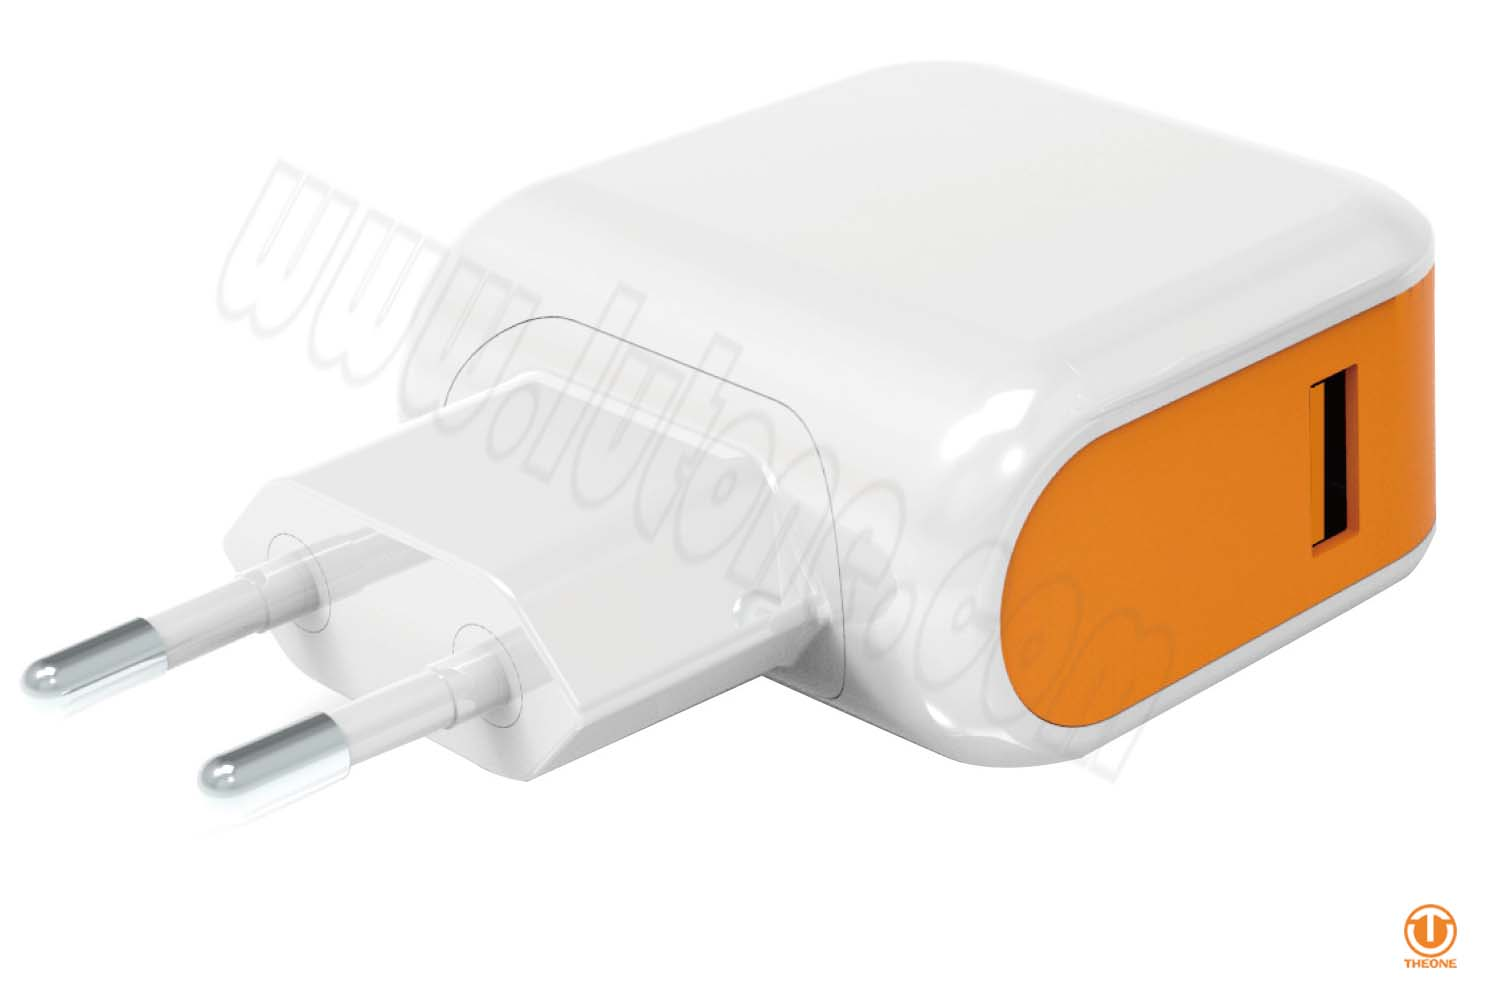 tq06b3-1 quick charger wall charger